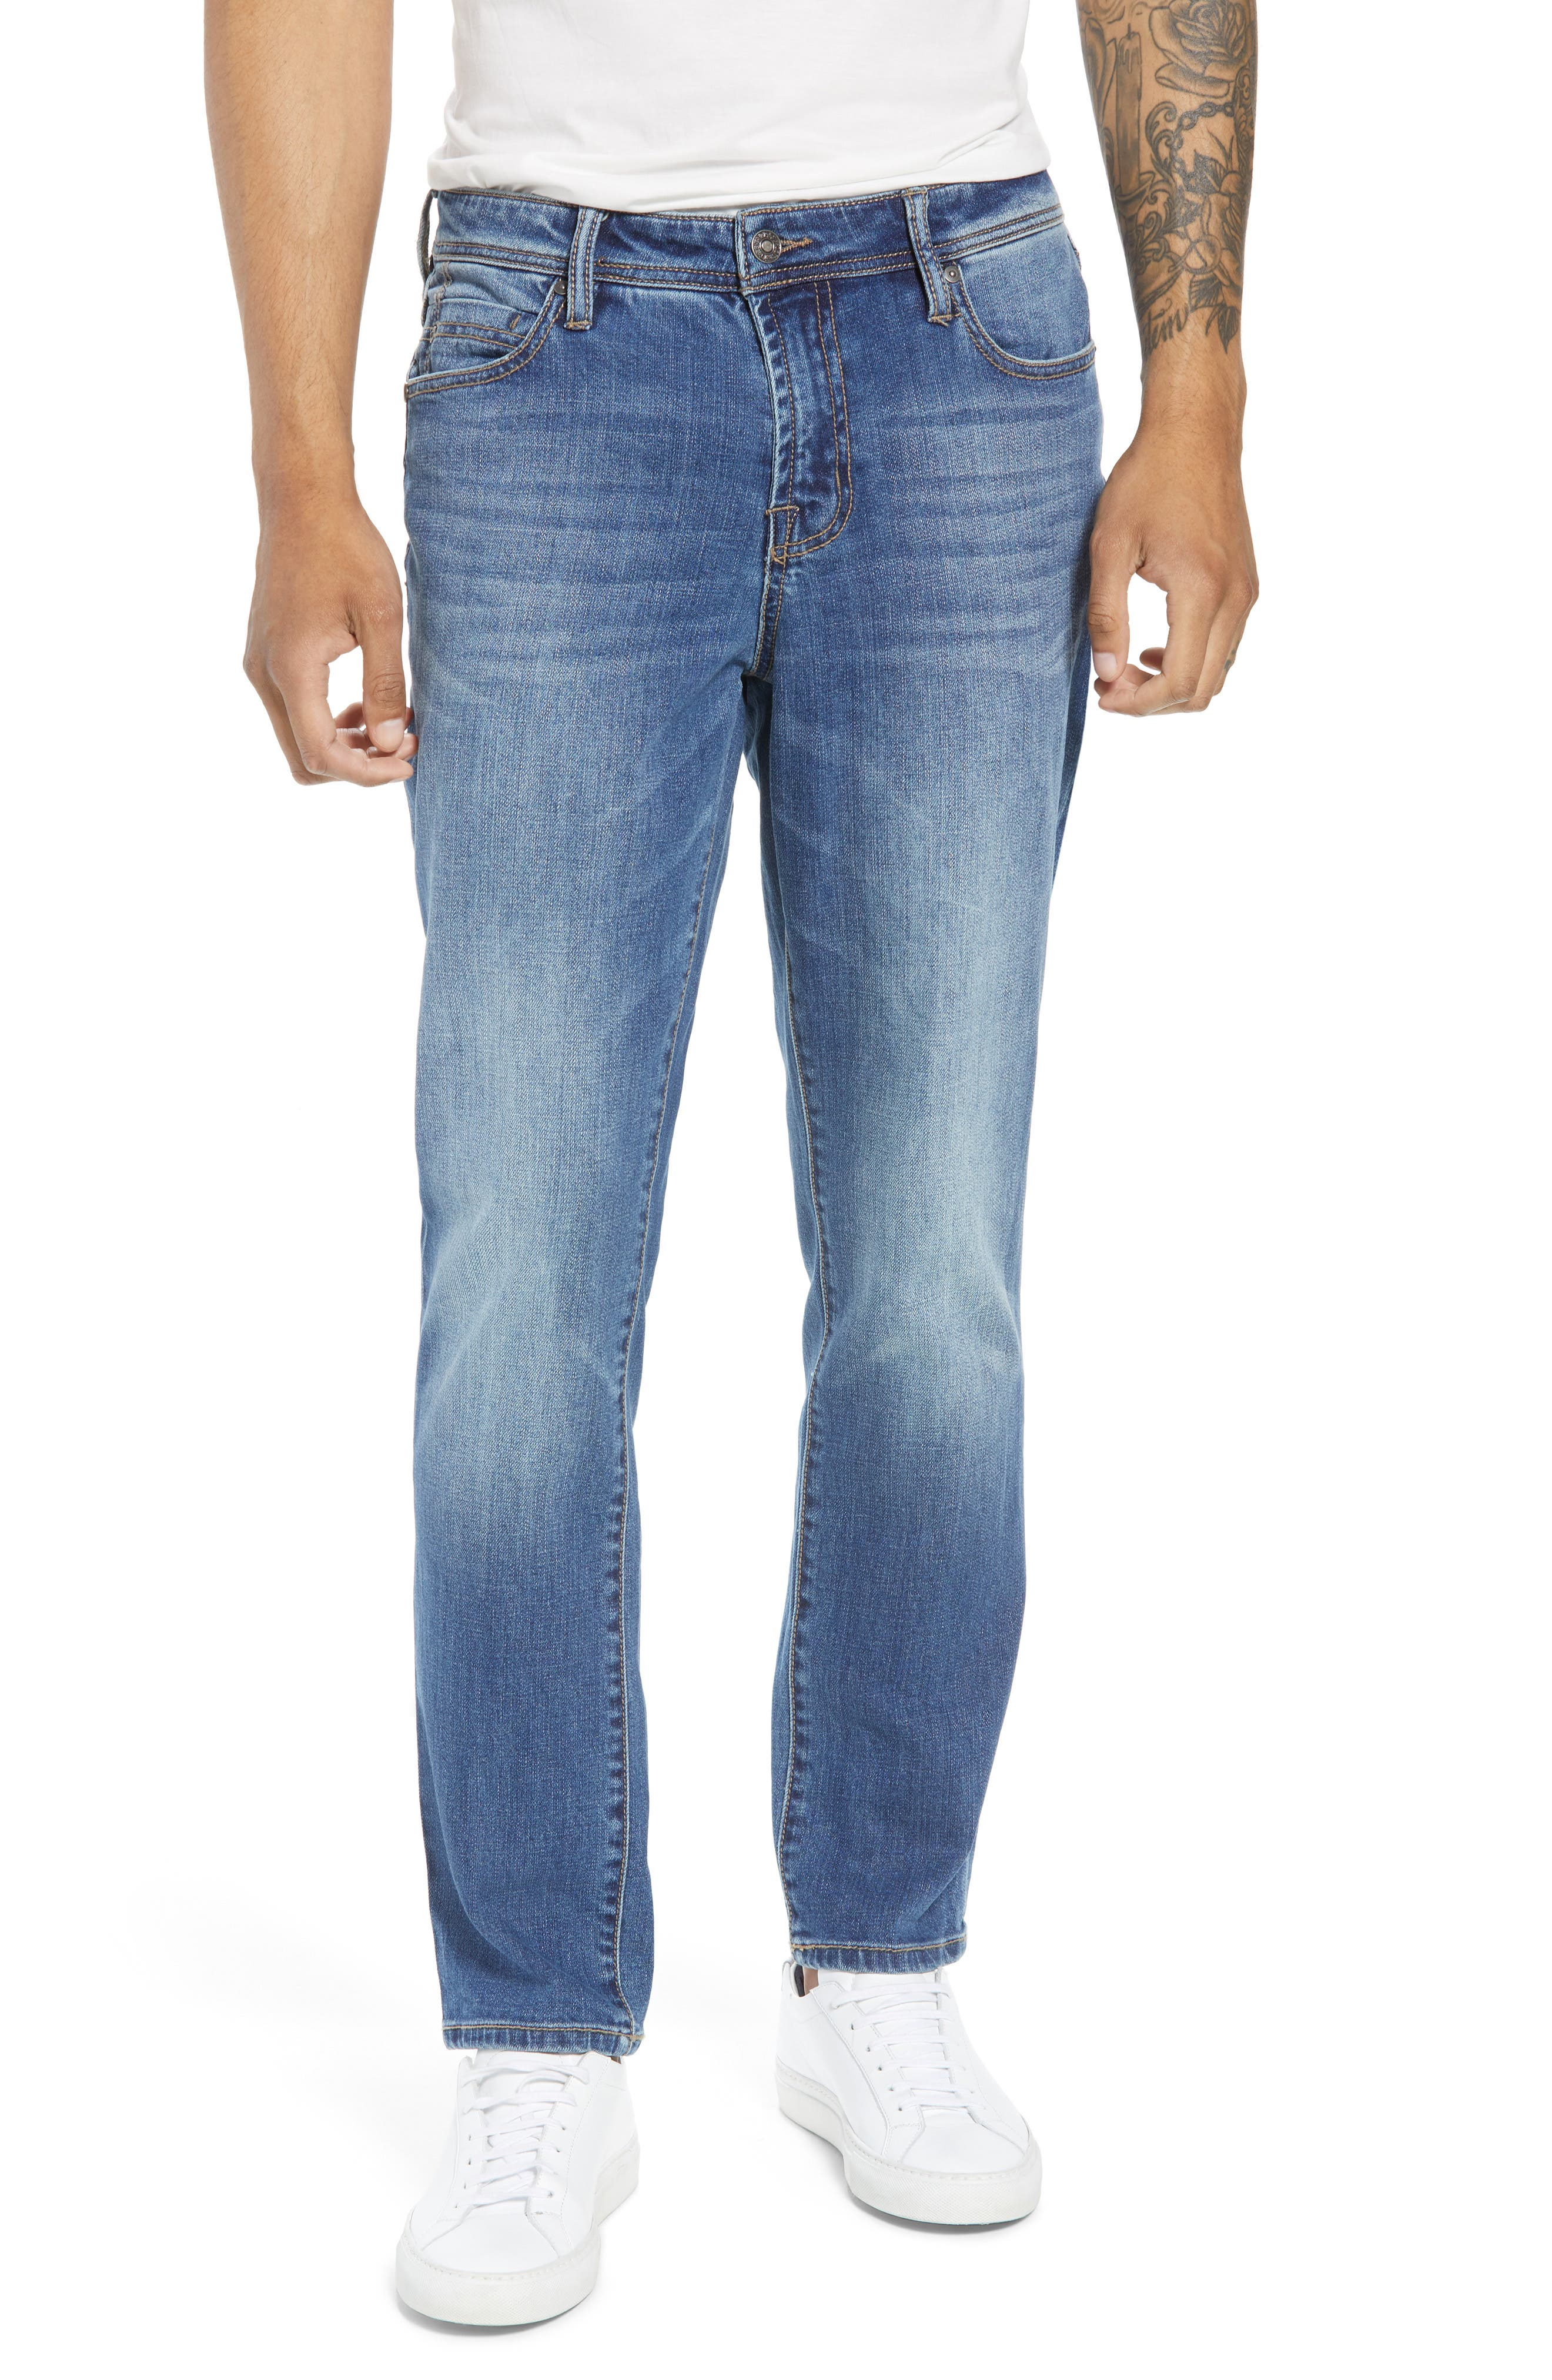 Liverpool Jeans Co. Slim Straight Leg Jeans (Bryson Vintage Medium)